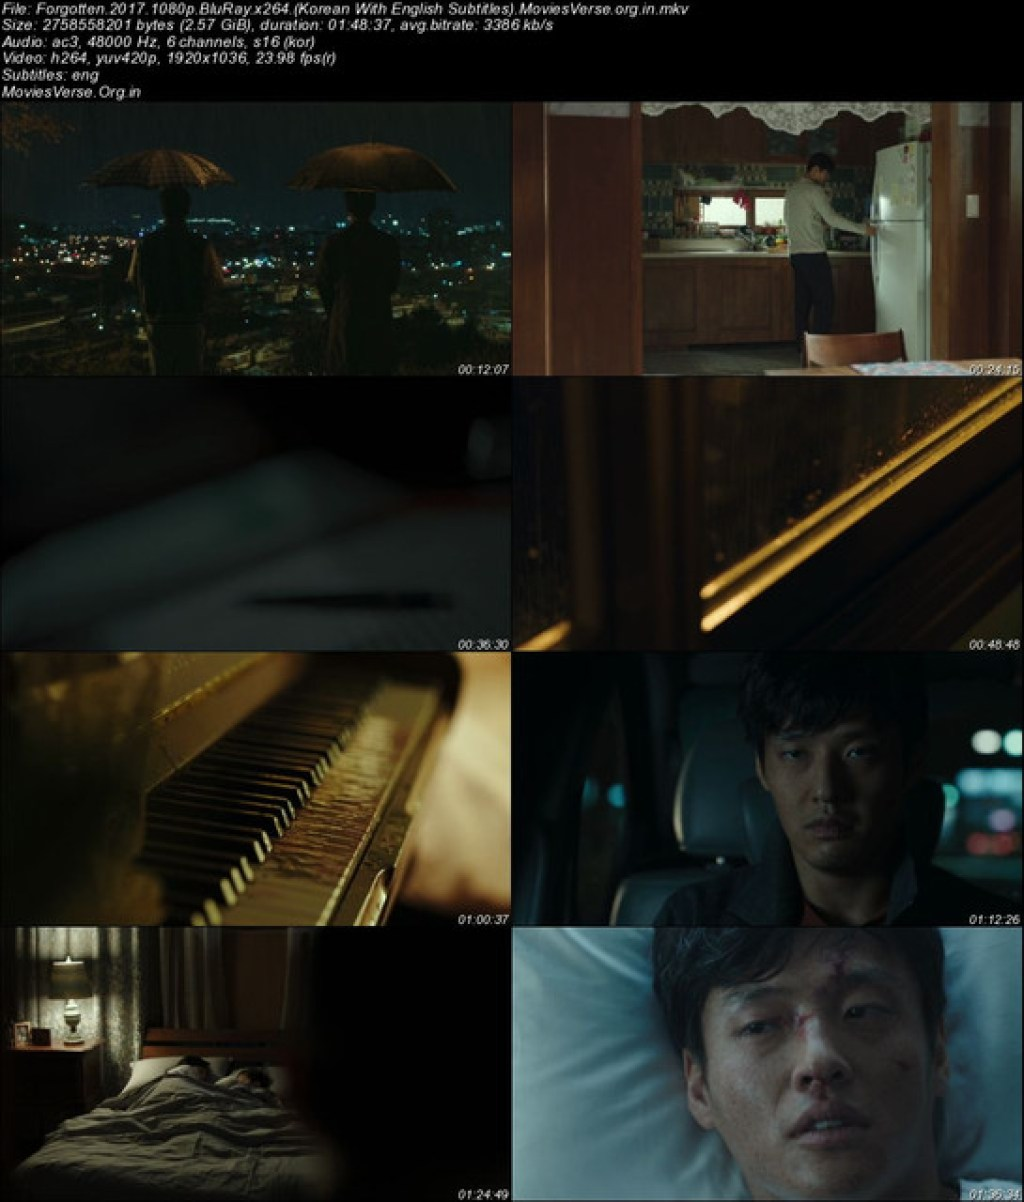 Forgotten-2017-1080p-Blu-Ray-x264-Korean-With-English-Subtitles-Movies-Verse-org-in